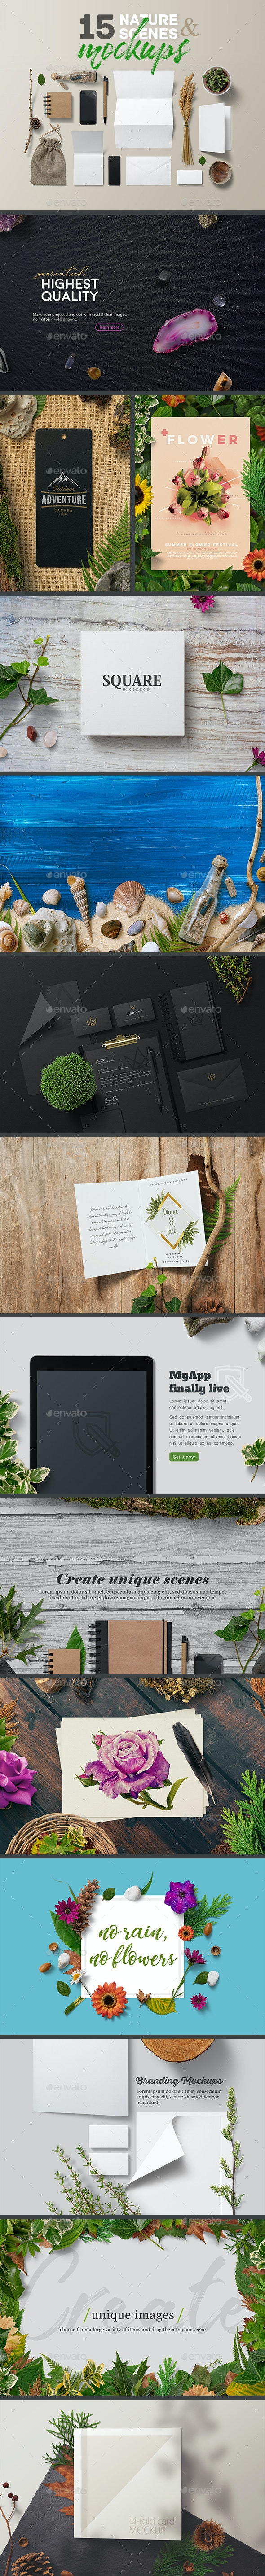 15 Nature Scenes & Mockups - Stationery Print